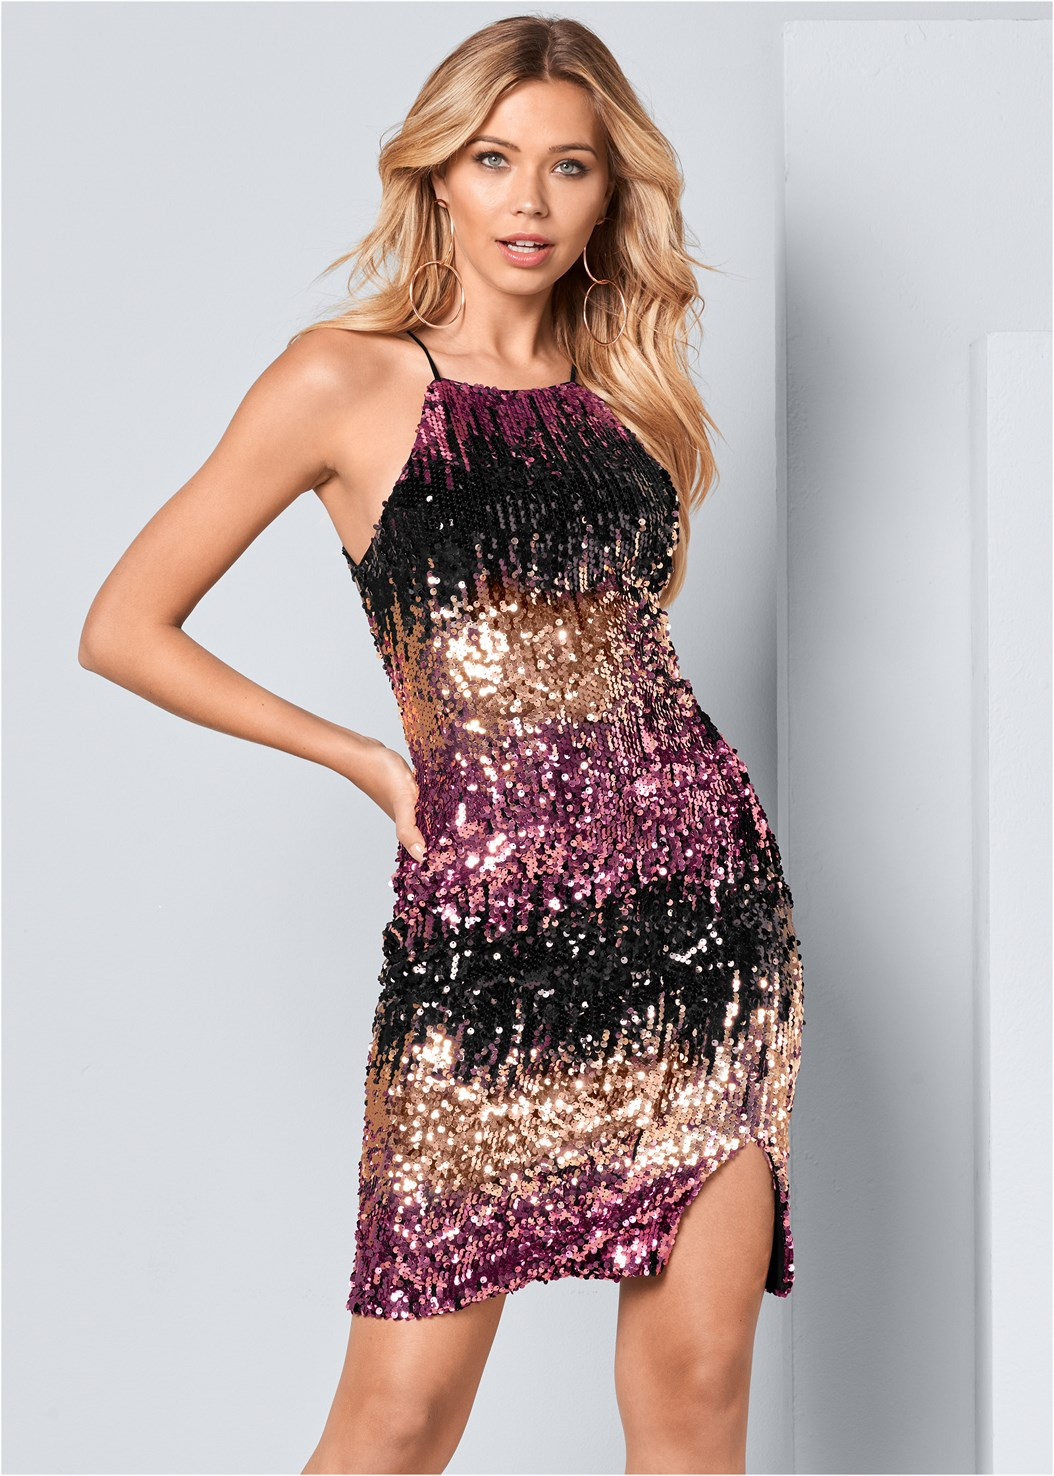 Sequin Ombre Dress,High Heel Strappy Sandals